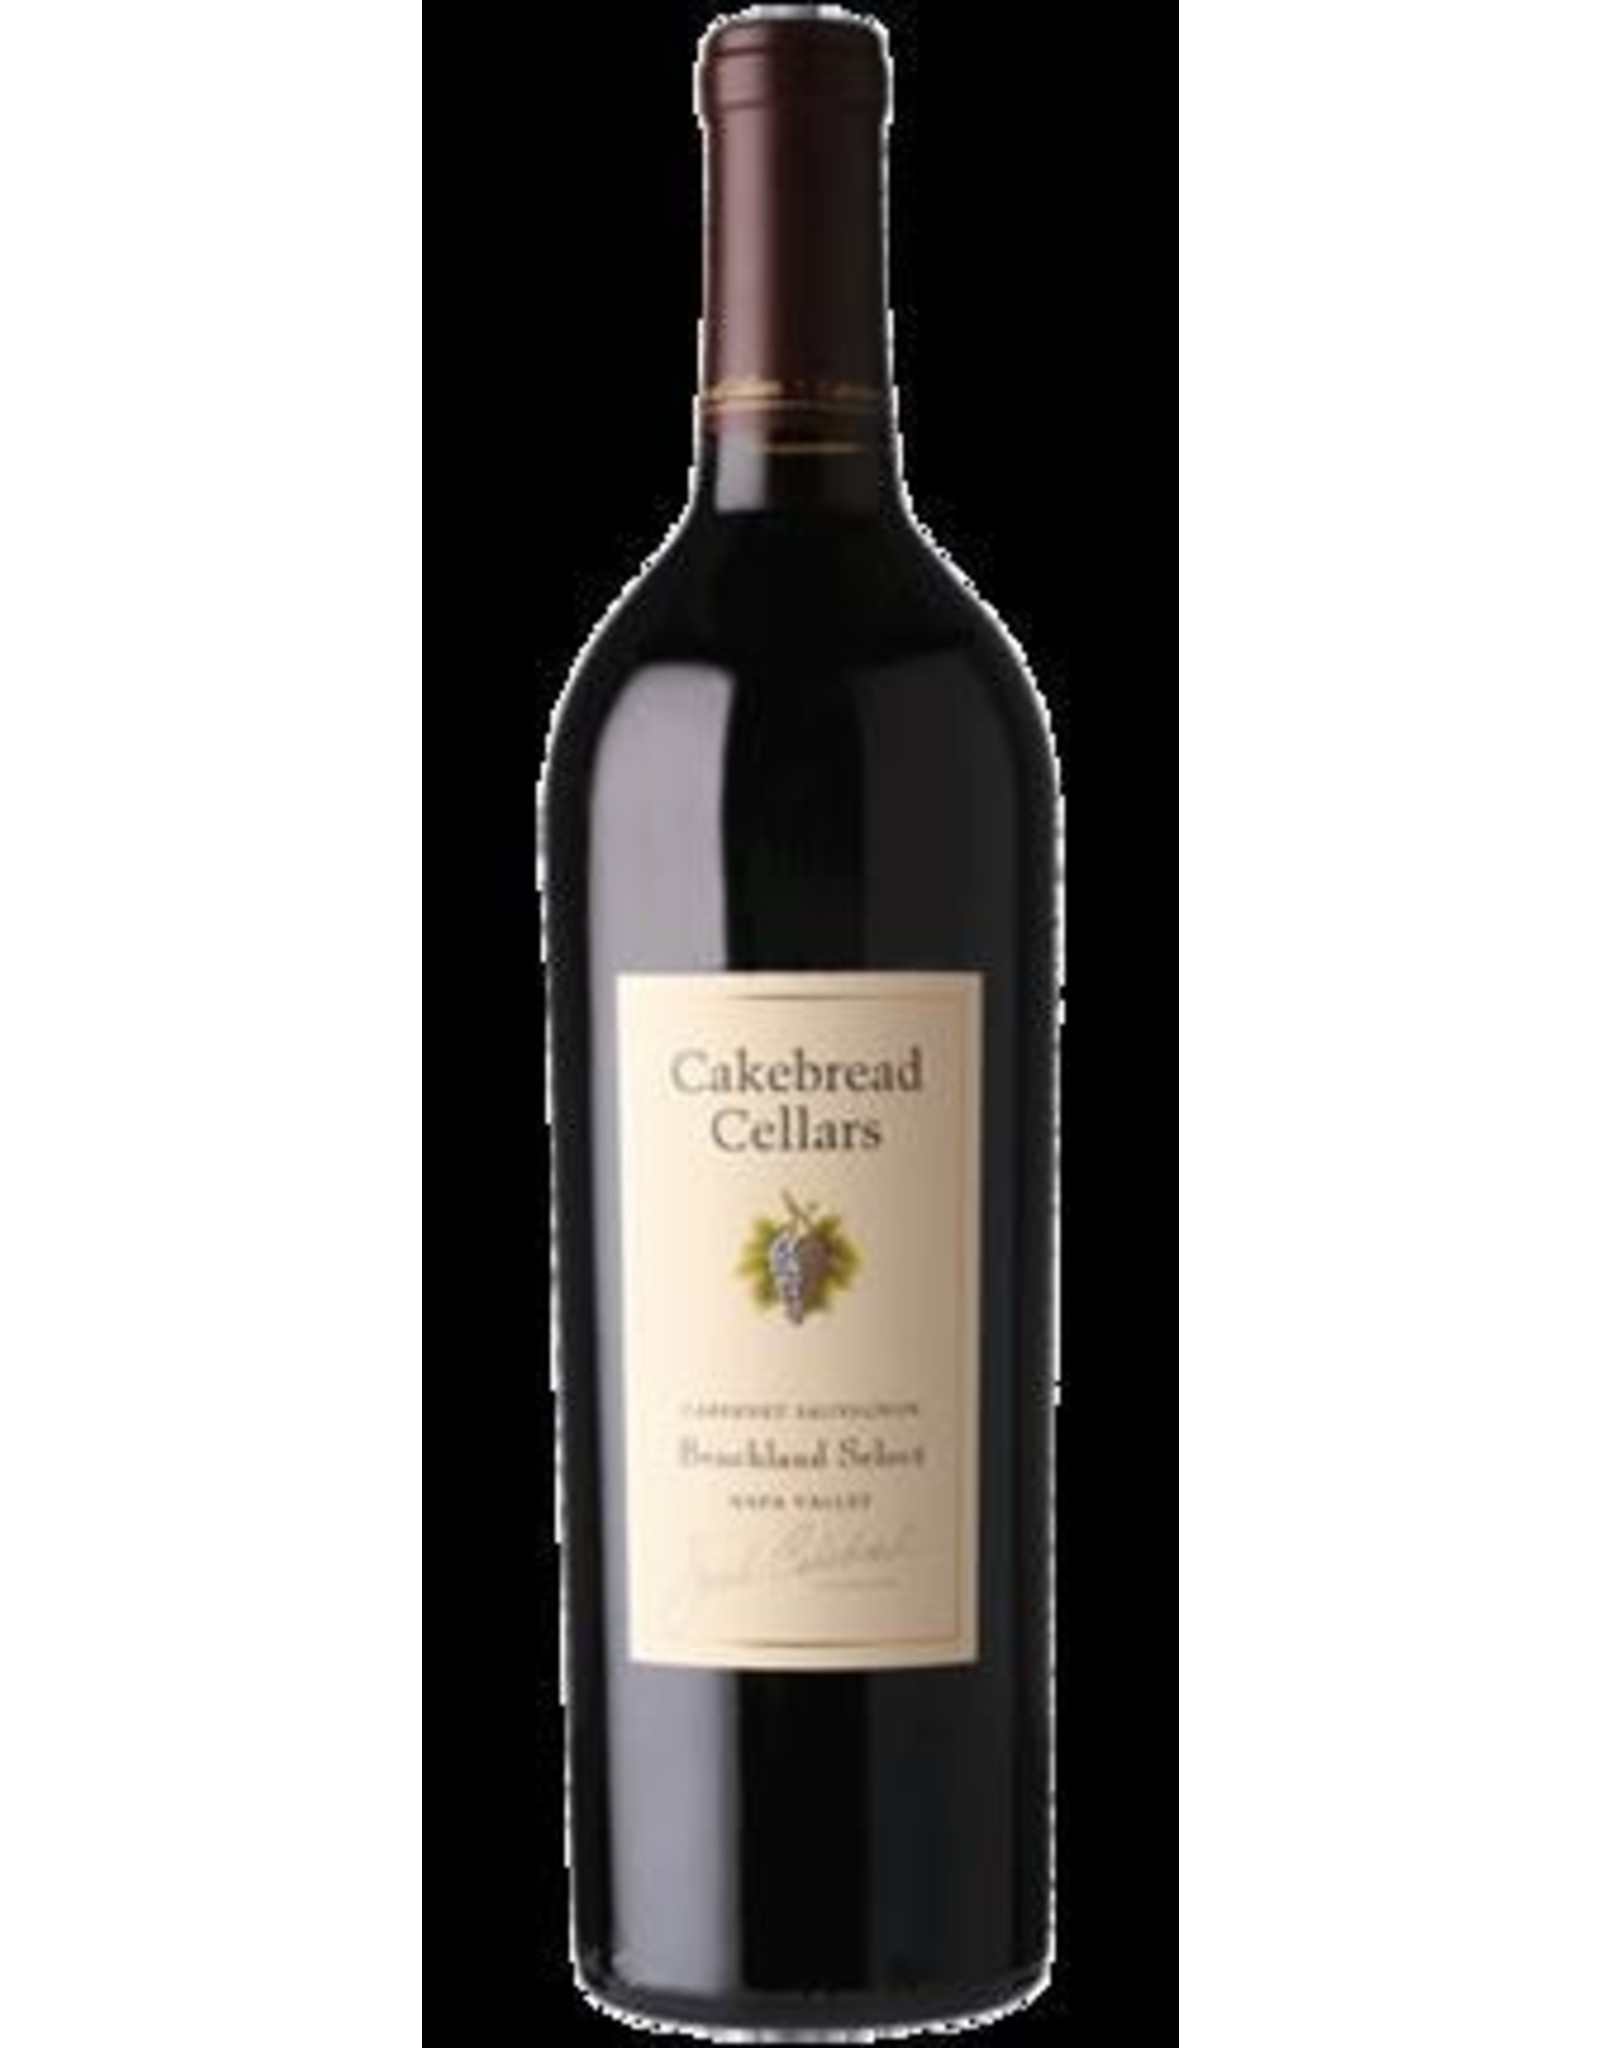 CAKEBREAD CELLARS 2010 BENCHLAND SELECT